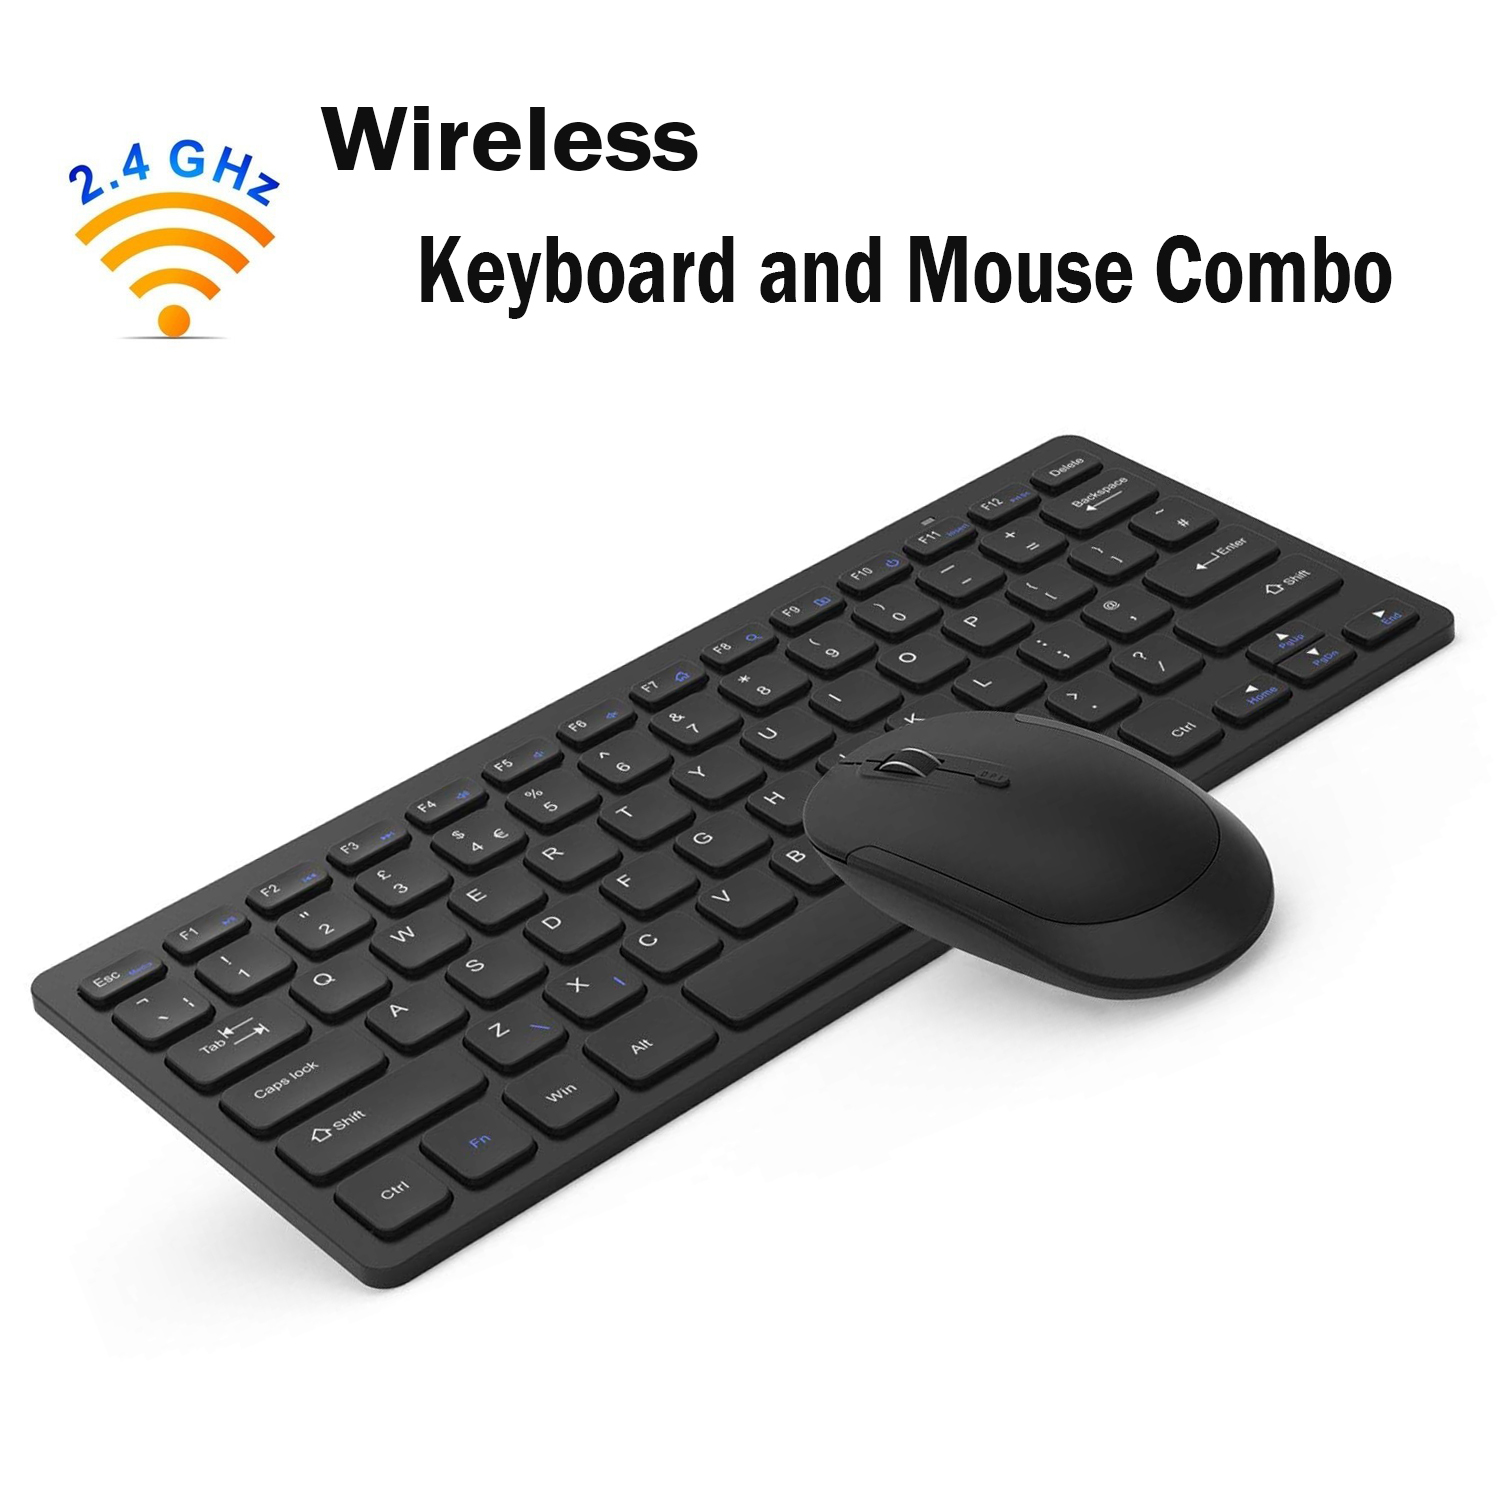 Wireless Keyboard and Mouse Combo, Jelly Comb 2.4GHz Ultra Thin Compact Portable SMALL Wireless Keyboard and Mouse Combo Set for PC, Desktop, Computer, Laptop, Windows XP/Vista / 7/8 / 10 - Black